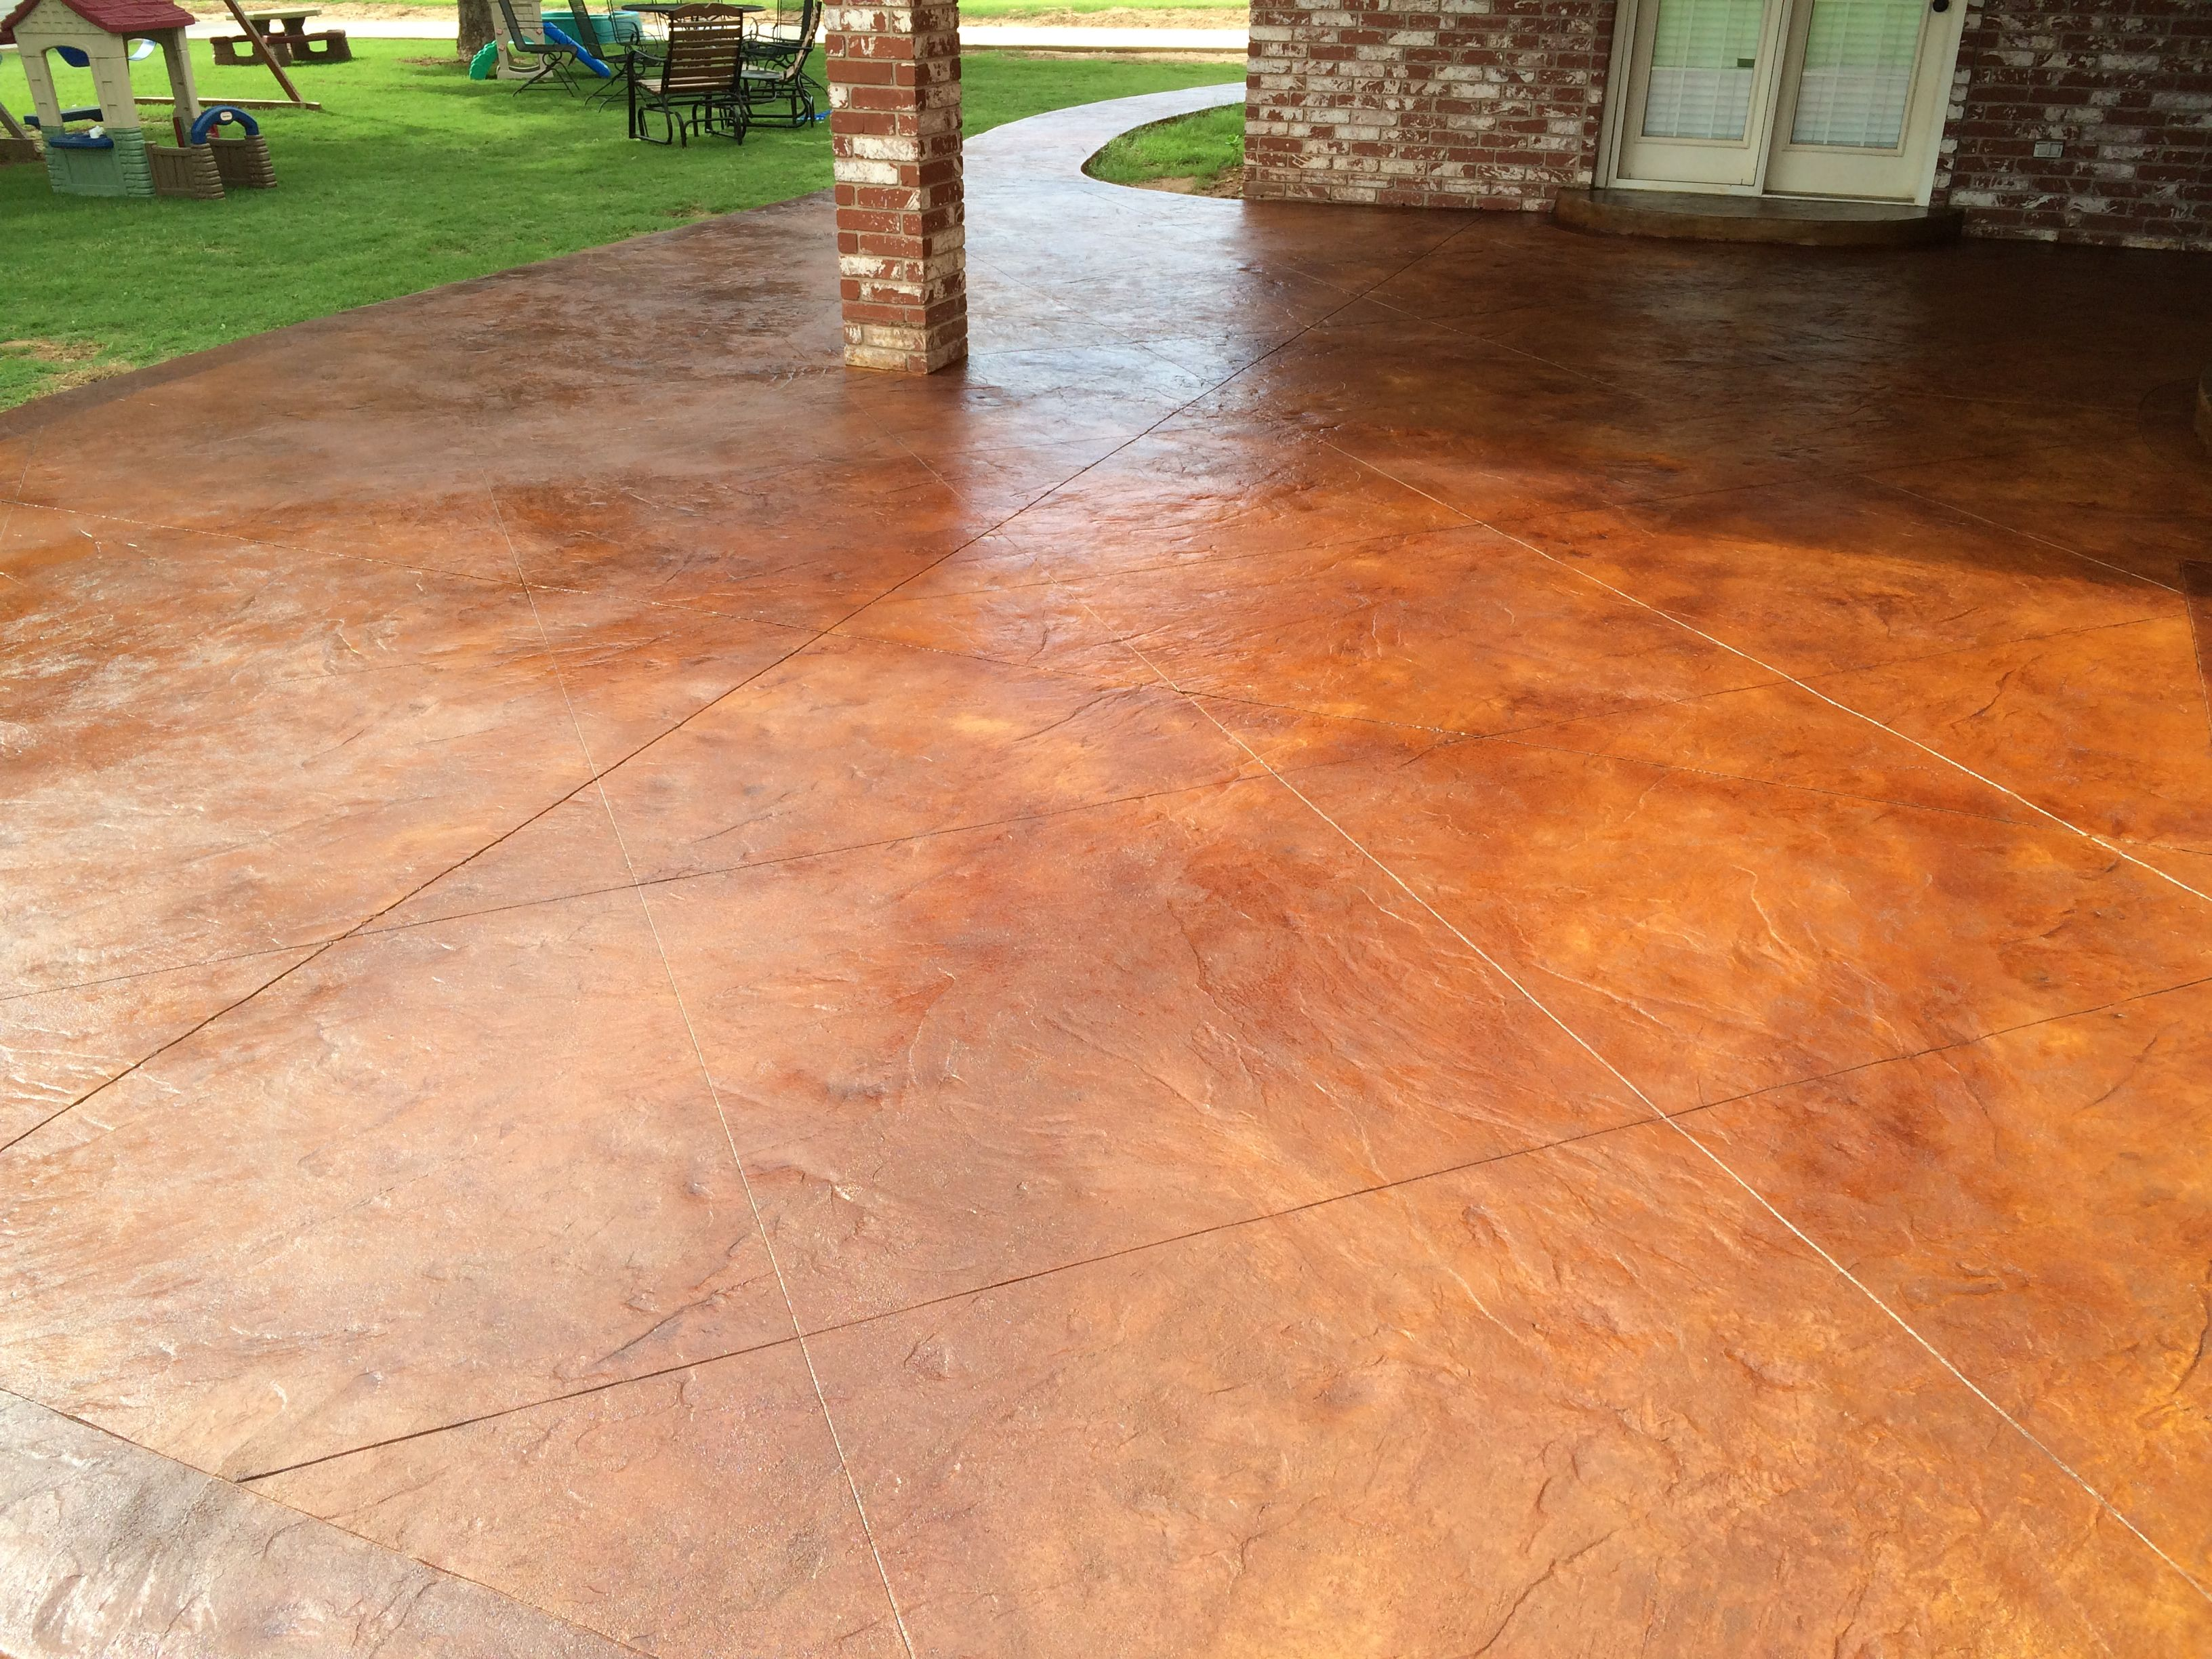 Italian Slate, Stamped Concrete, Stained Concrete, Vintage ...